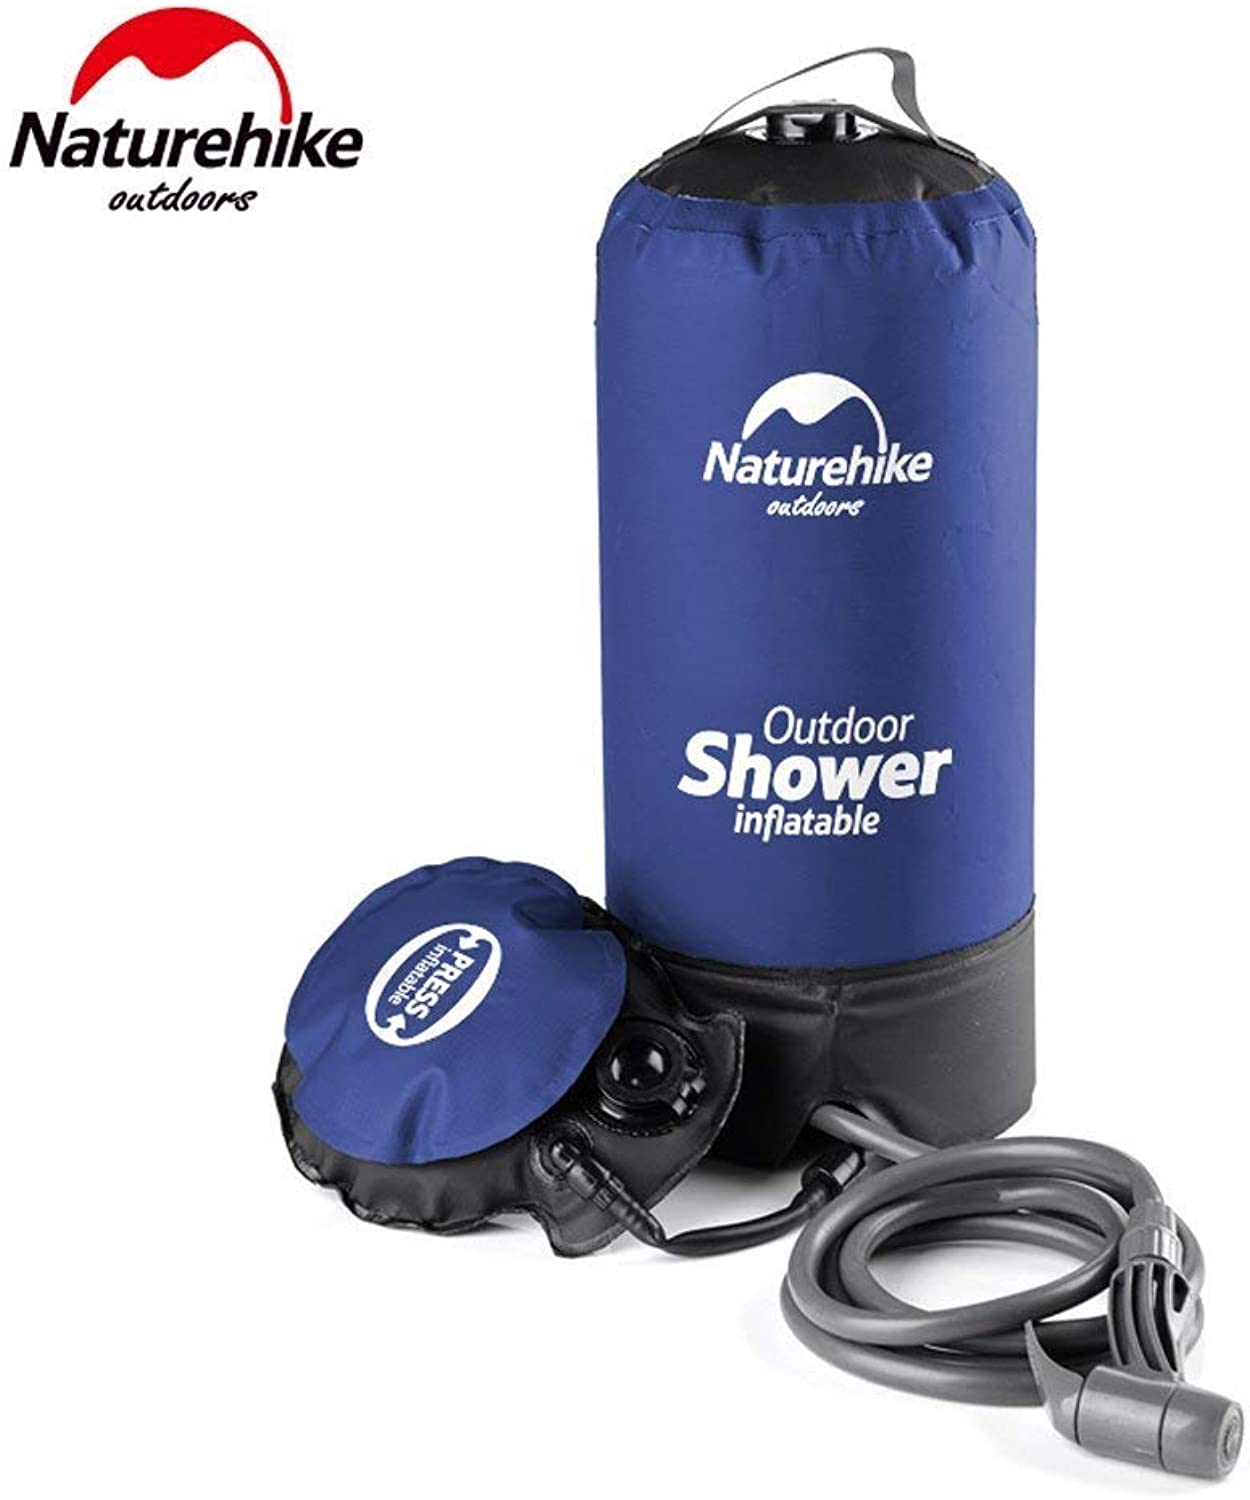 Free walker Naturehike Outdoor Inflatable Shower Pressure Water Jet Shower Bag Potable Water Bag for Outdoor Bathing,Car Washing (bluee)